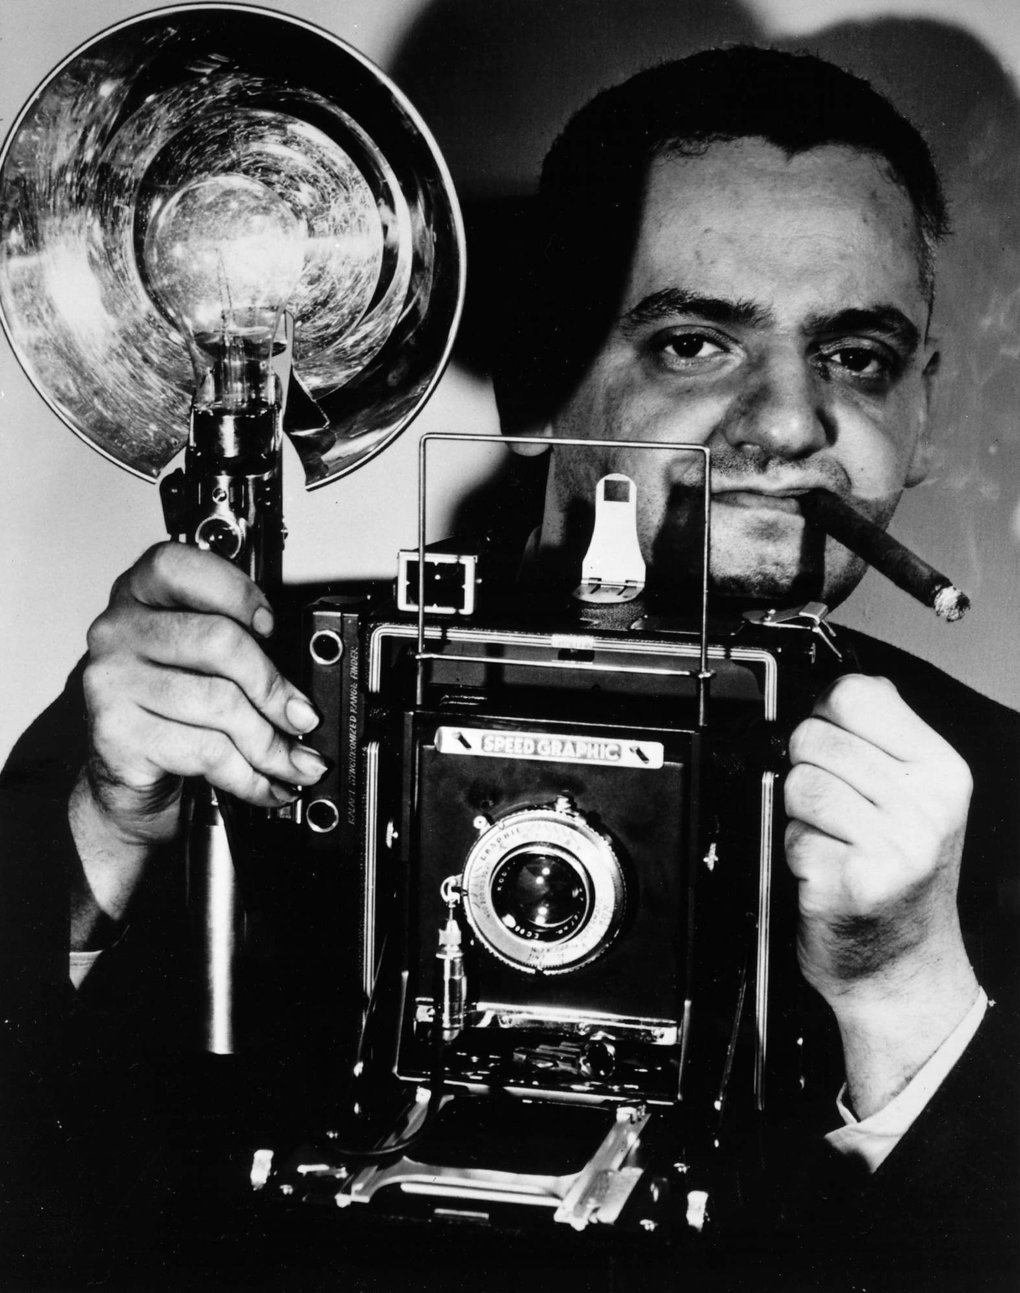 Weegee, whose crime photos are among the most famous in 20th century journalism. (Courtesy of International Center of Photography via KRT)